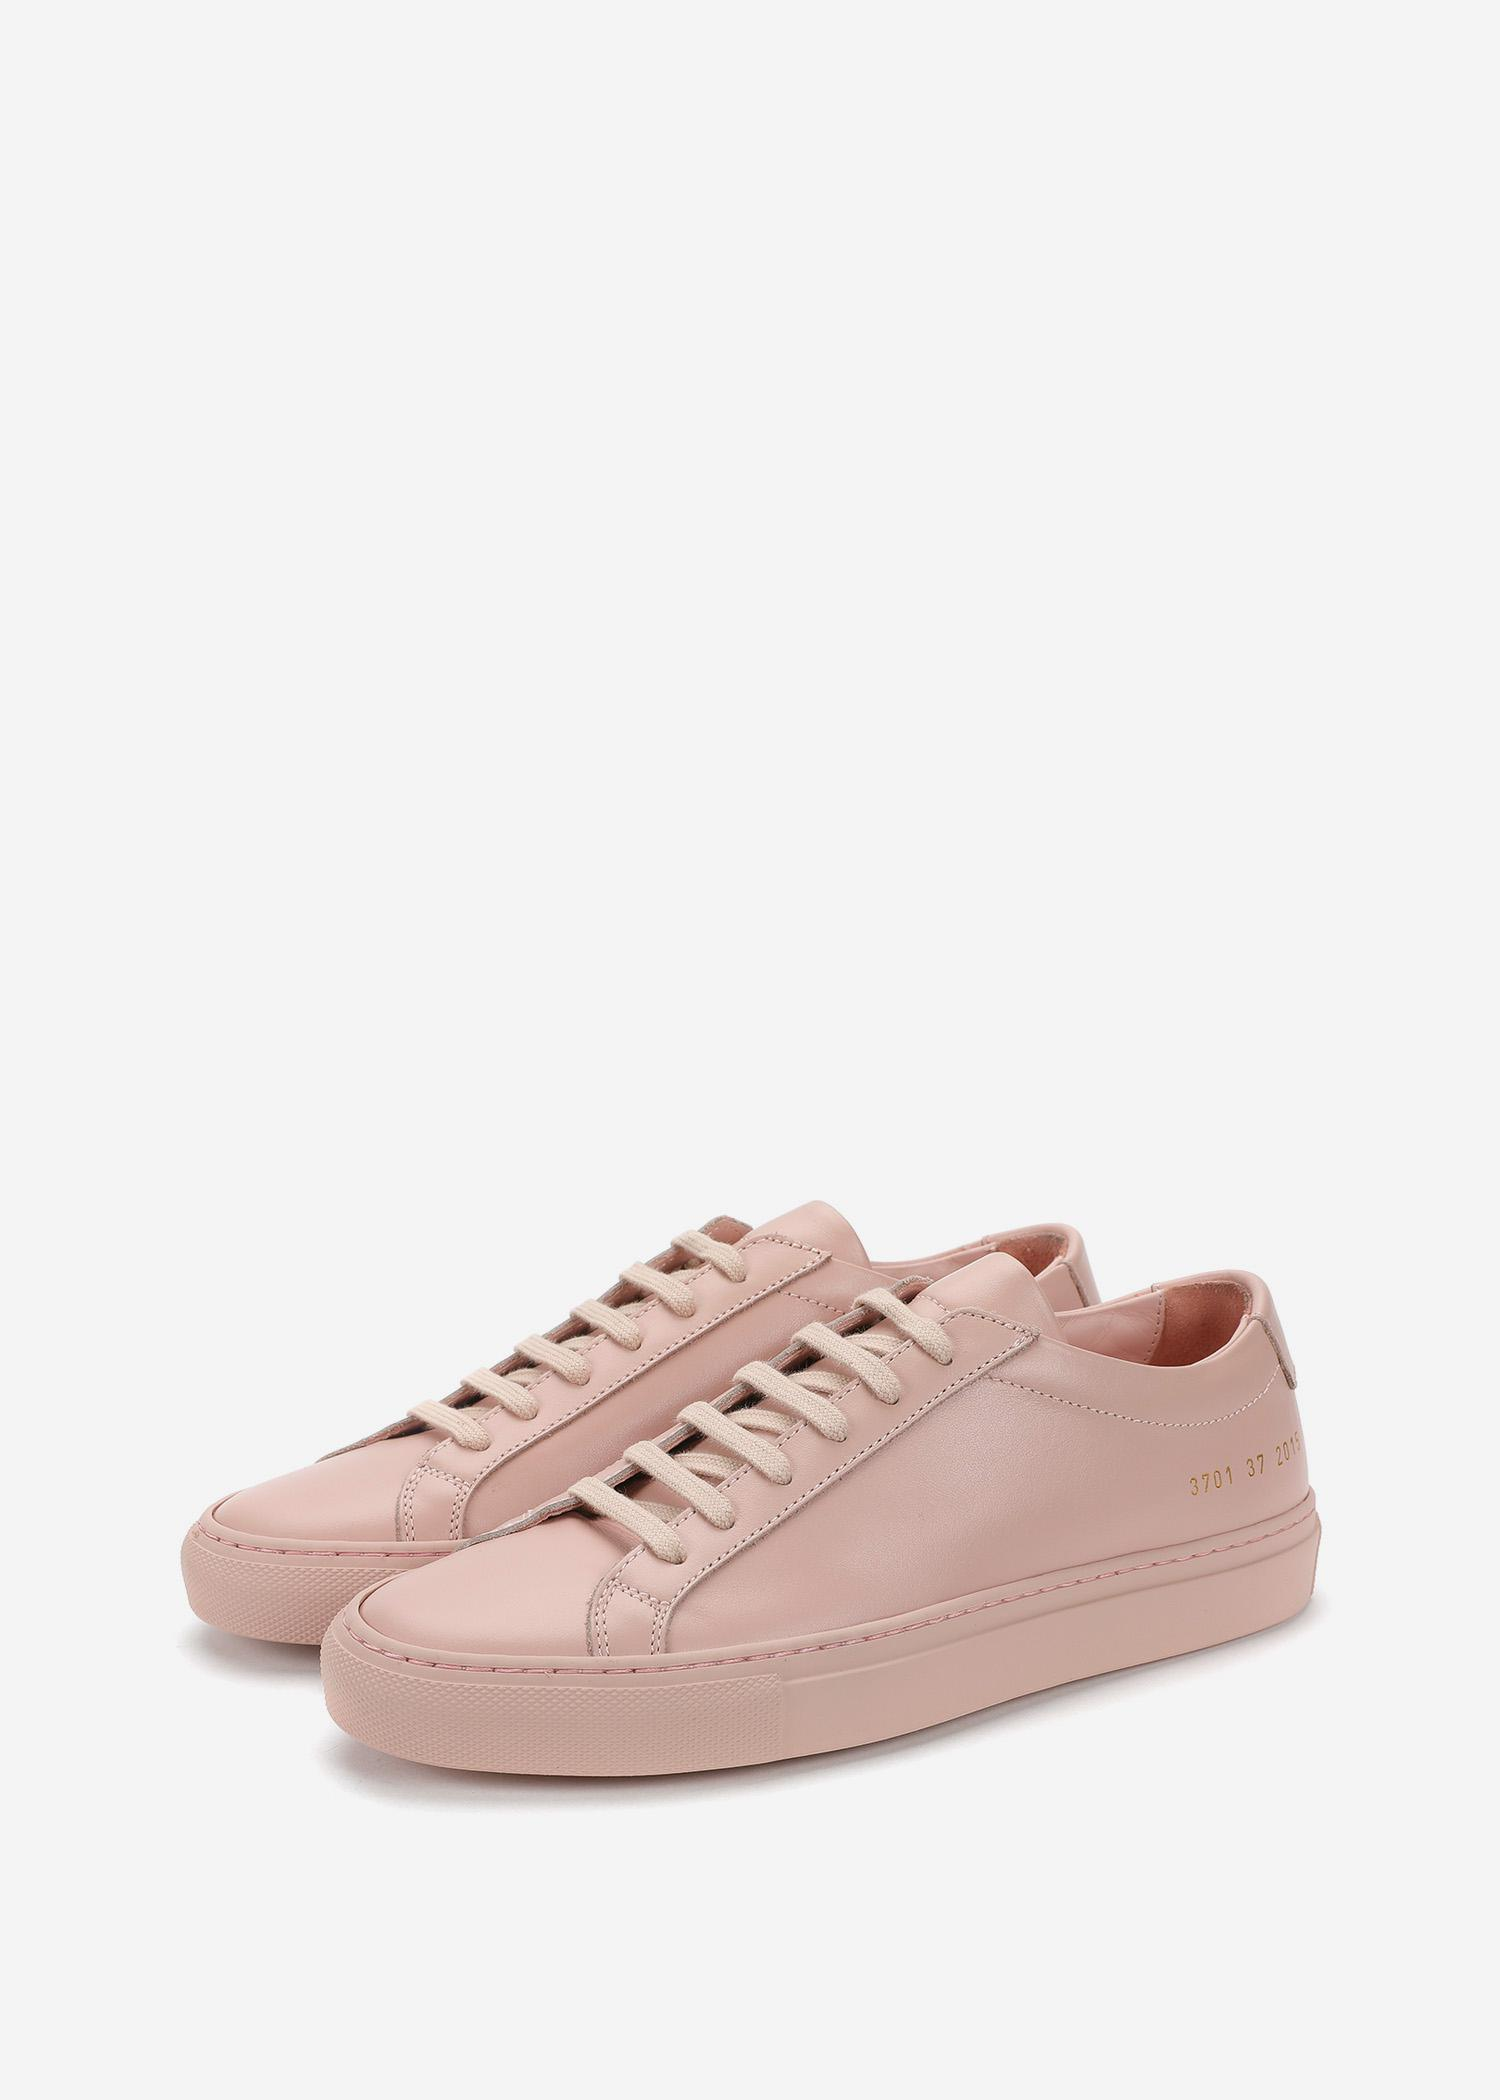 4adc0231c2a ... Pink Women s Sneakers Original Achilles Low - Lyst. View fullscreen